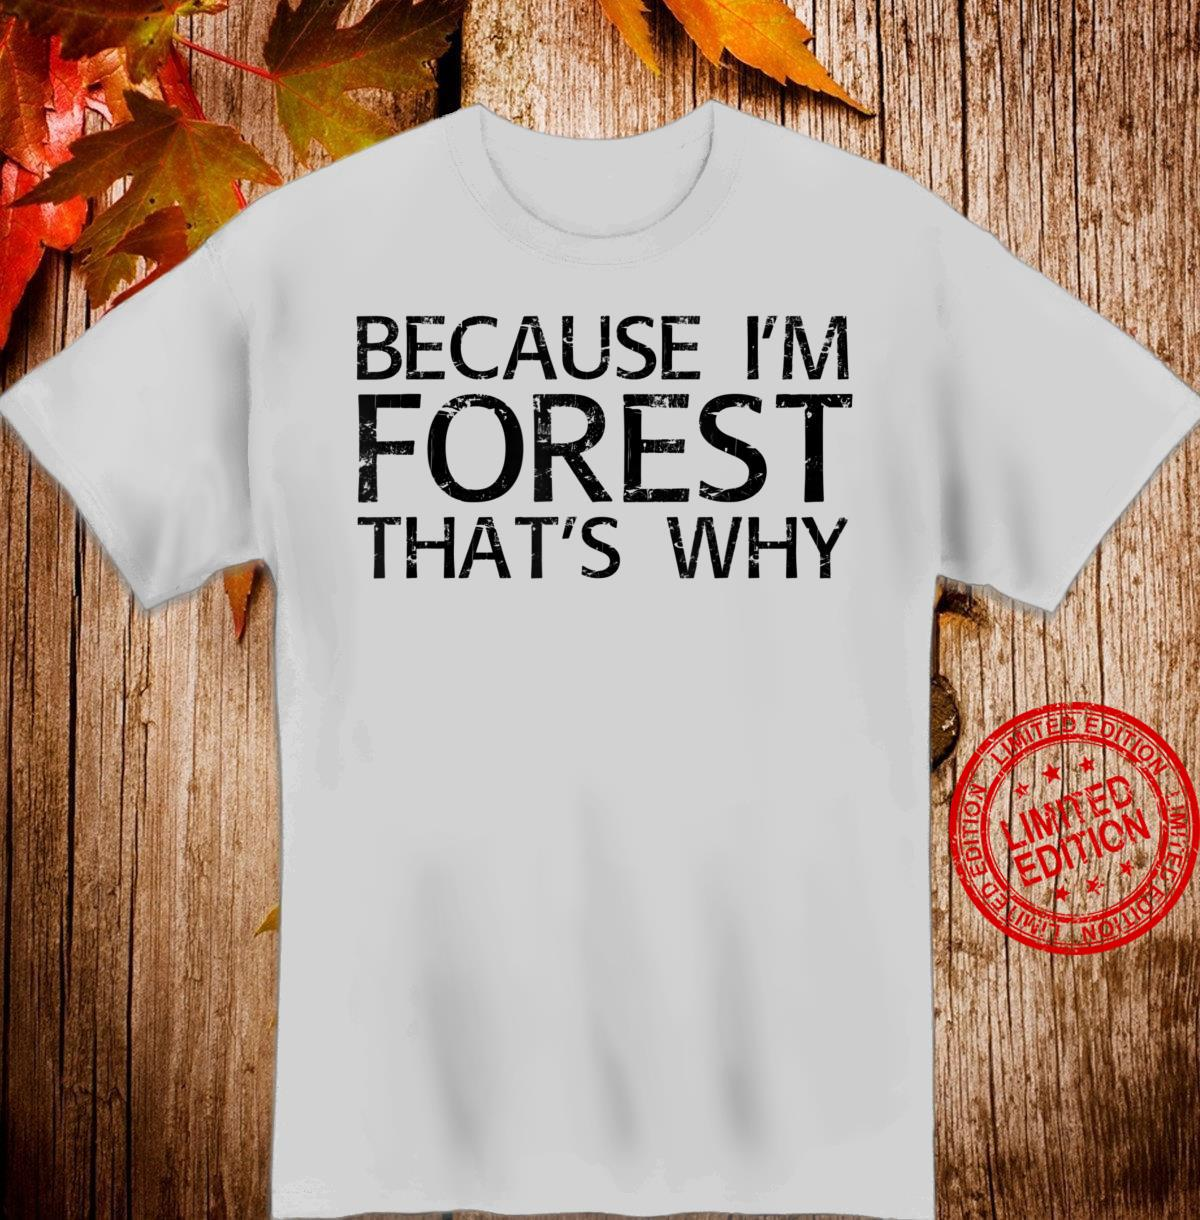 BECAUSE I'M FOREST THAT'S WHY Personalized Name Shirt